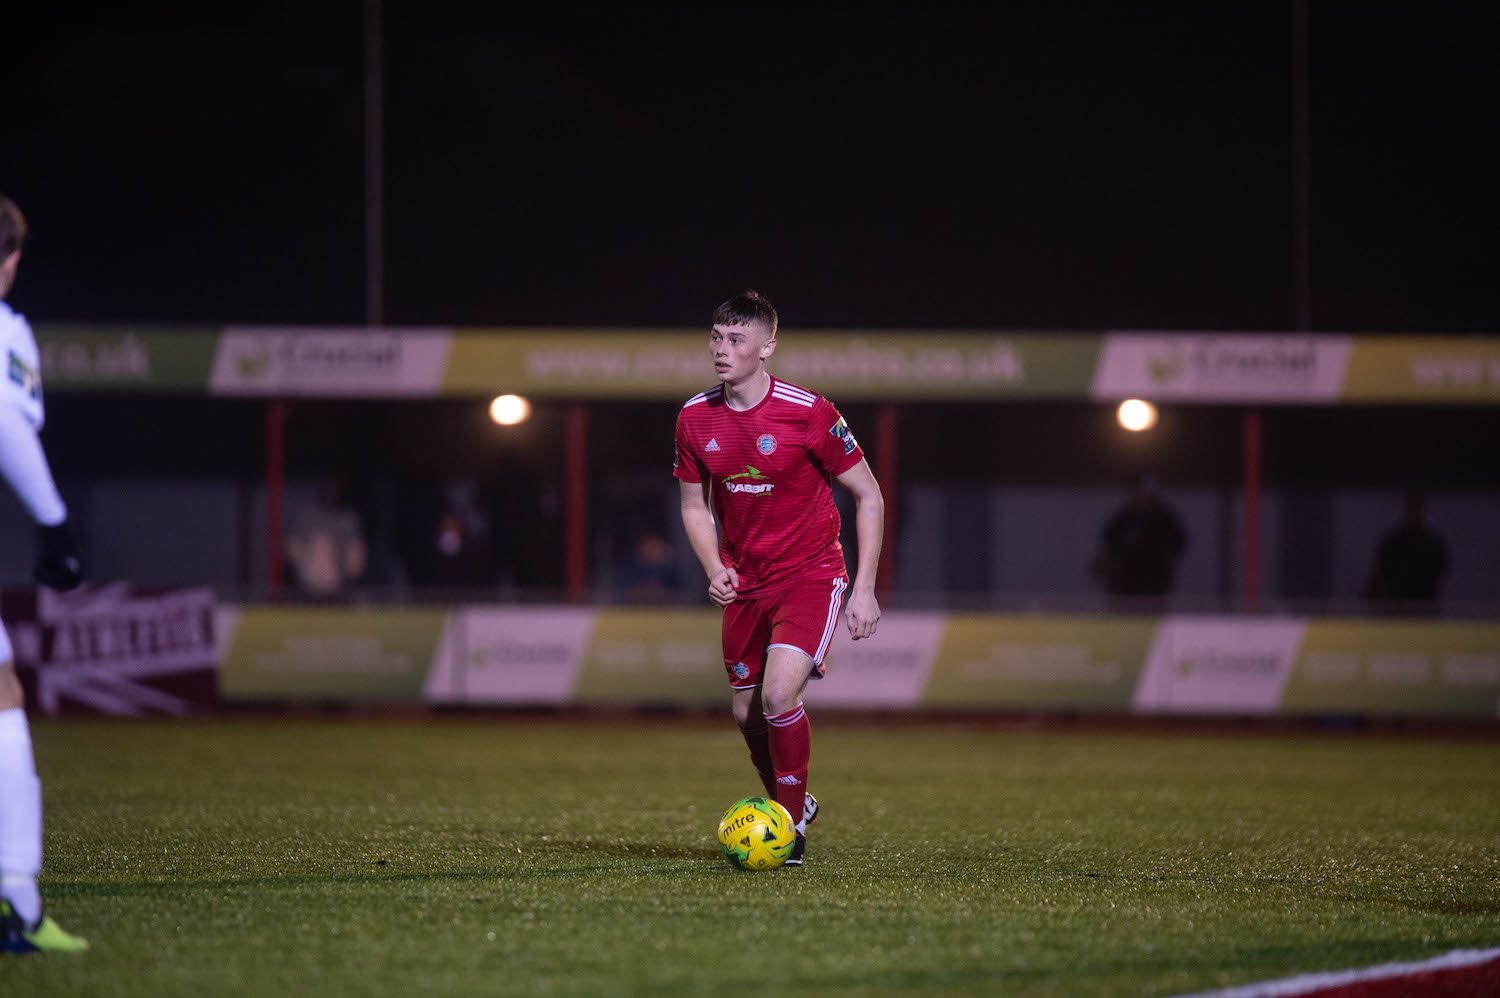 Read the full article - Gallery: Carshalton Athletic [H] – League